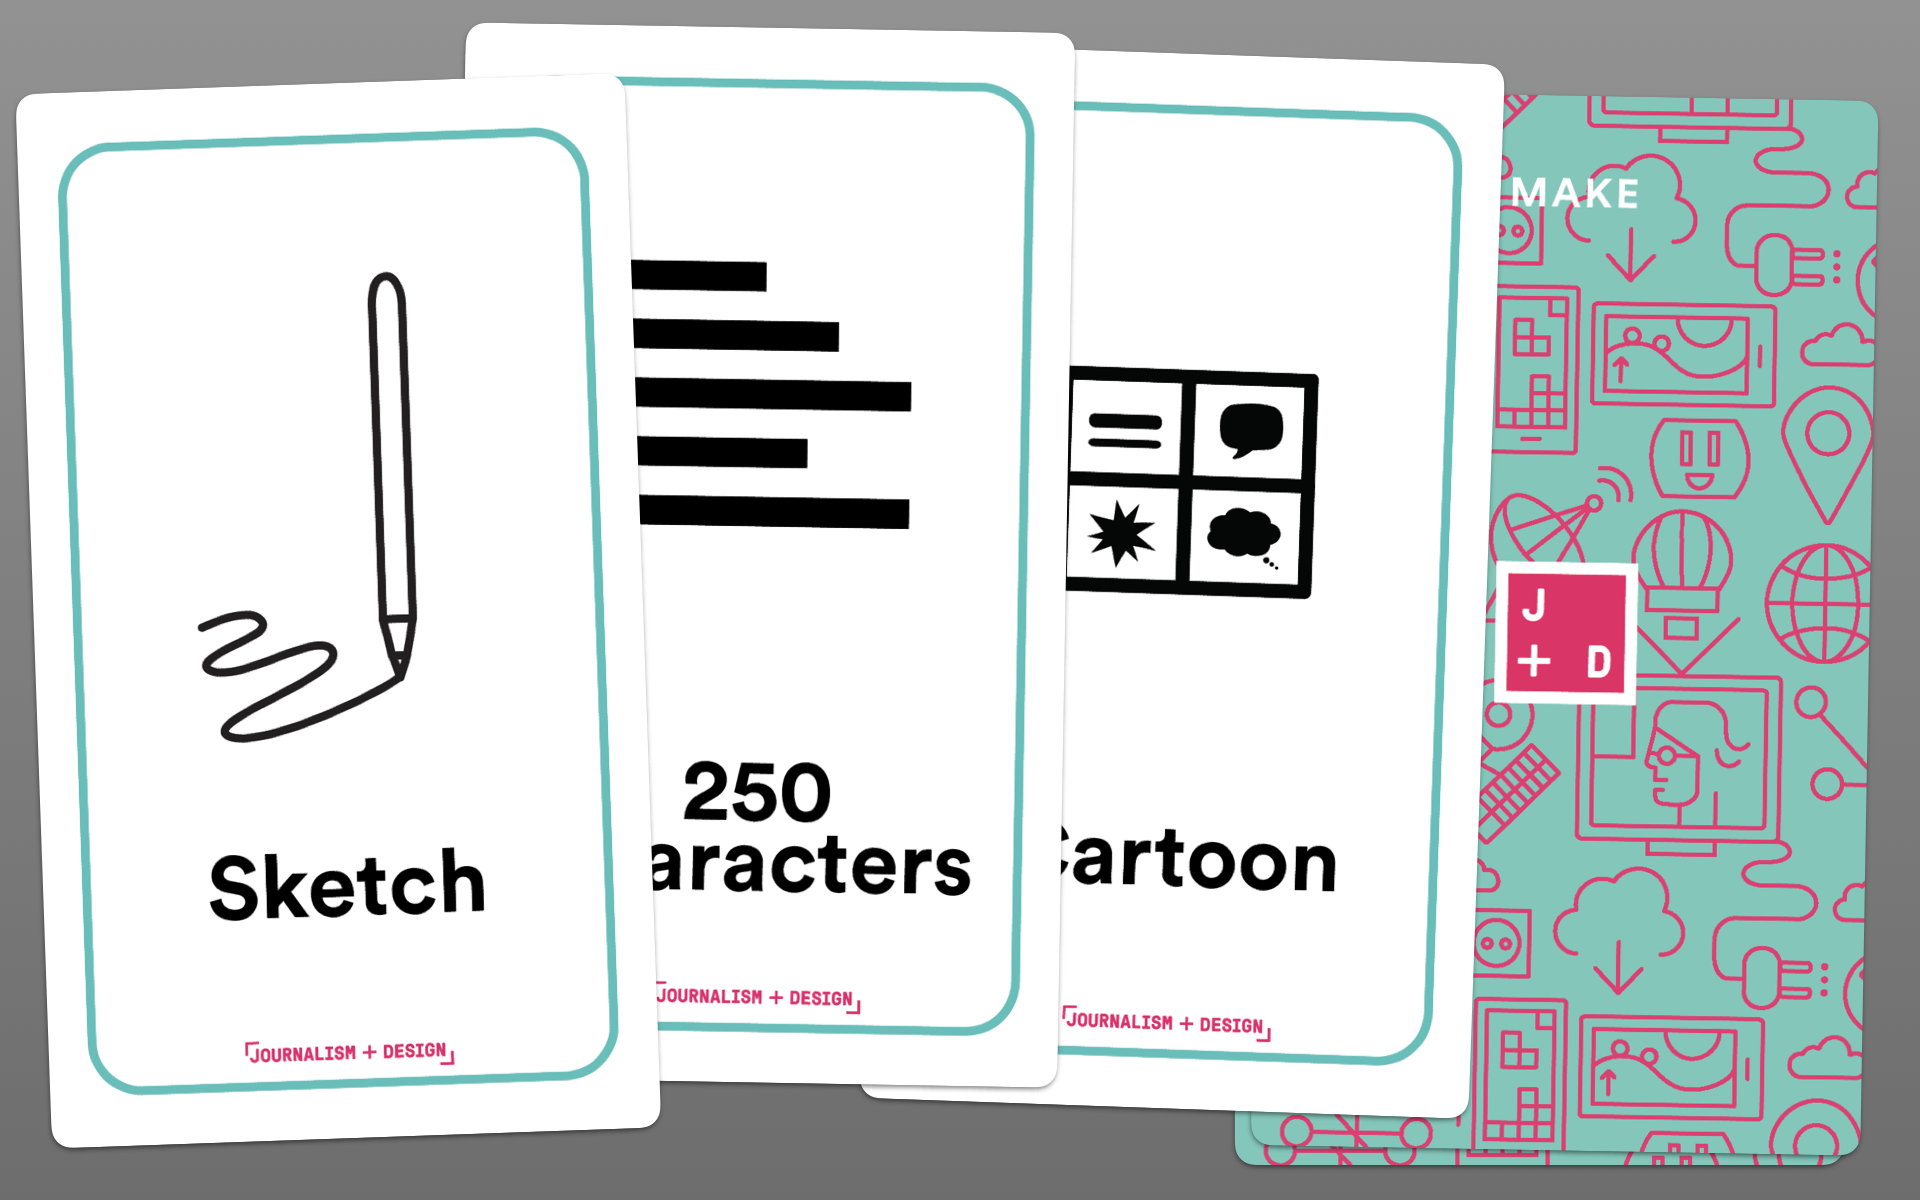 MAKE CARDS  Constraints from headline to full story, plus a range of storytelling formats beyond text.